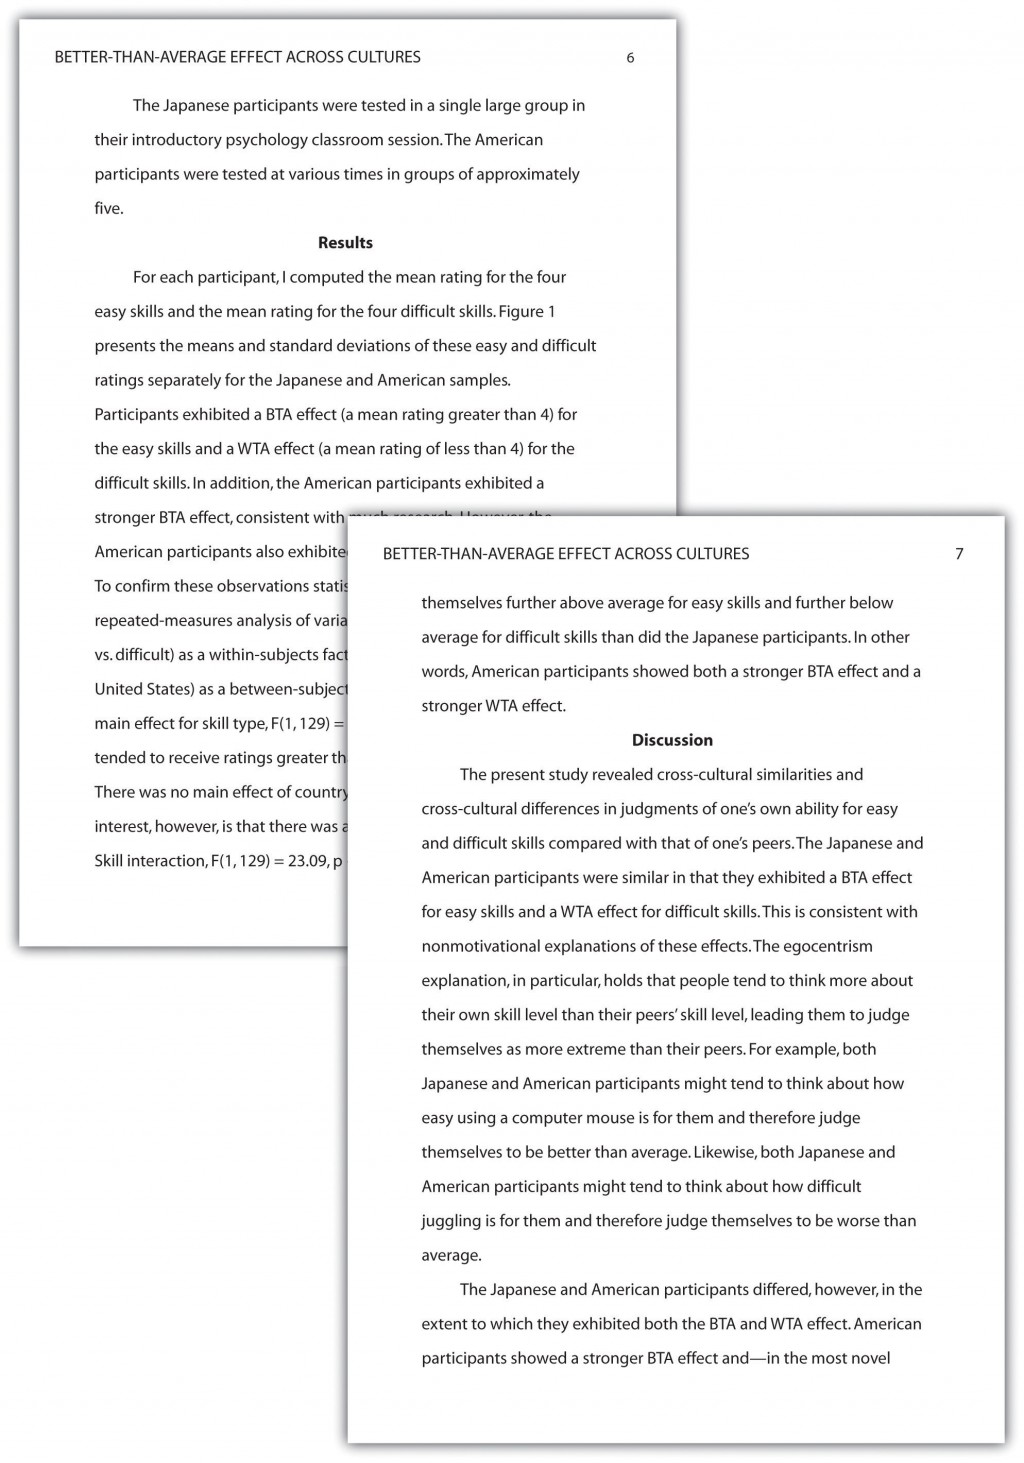 022 Research Paper Conclusion Of Incredible A About Bullying Writing Good How To Write The Pdf Large